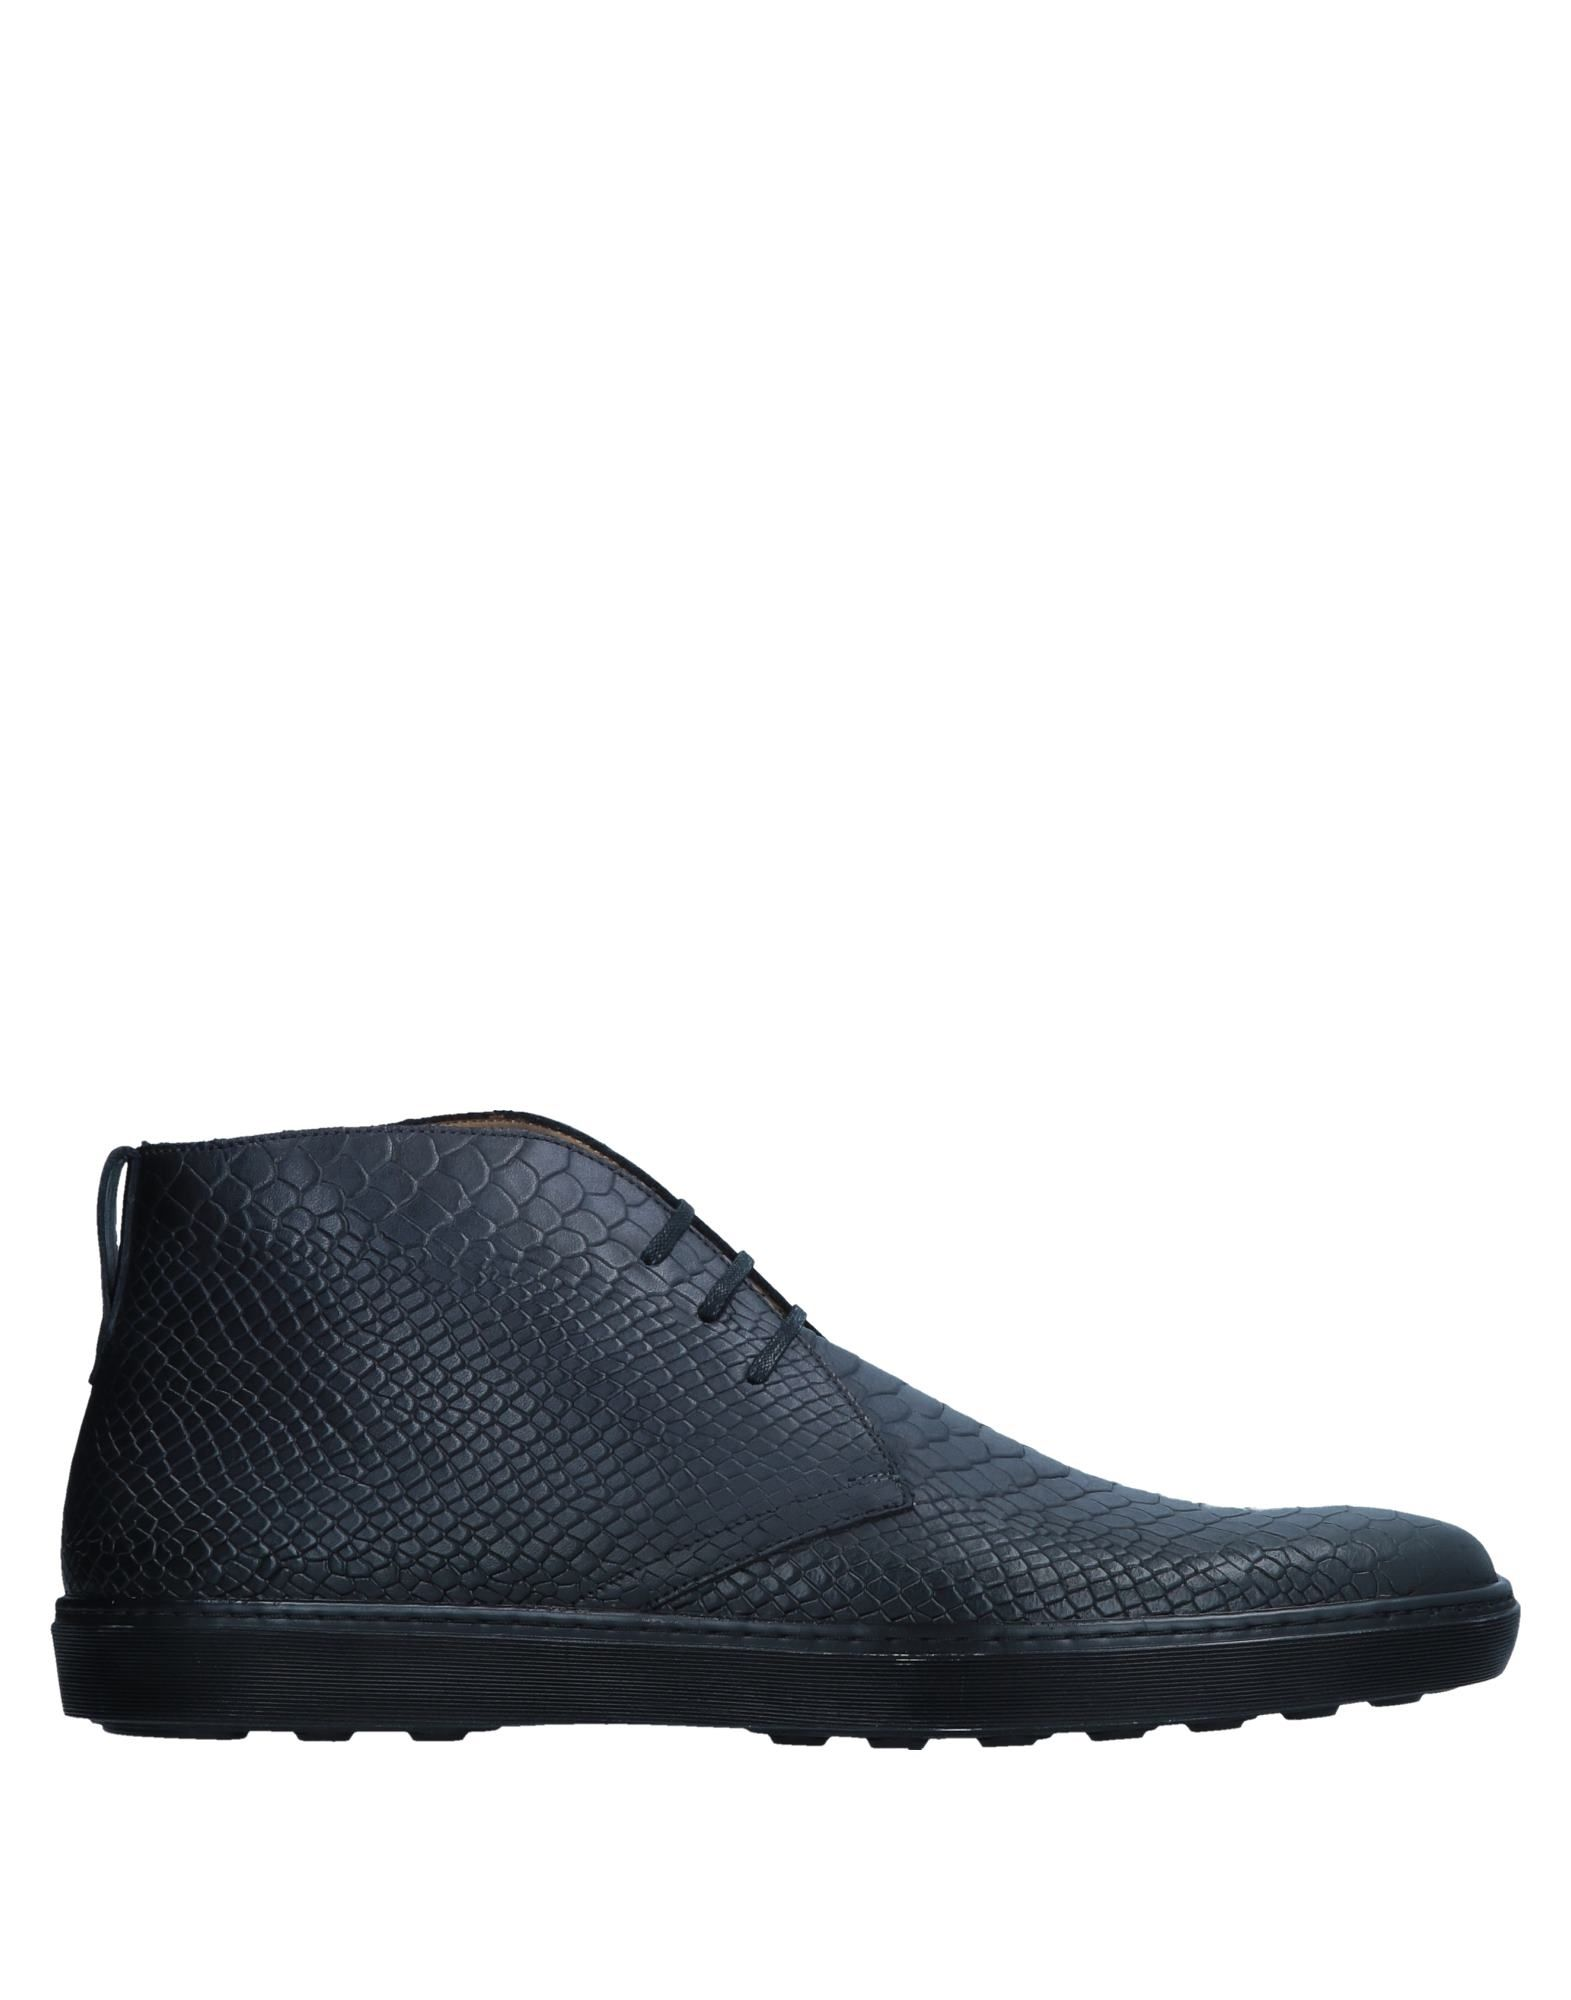 Profession: Bottier Boots Boots - Men Profession: Bottier Boots Boots online on  Canada - 11552122LO 605773